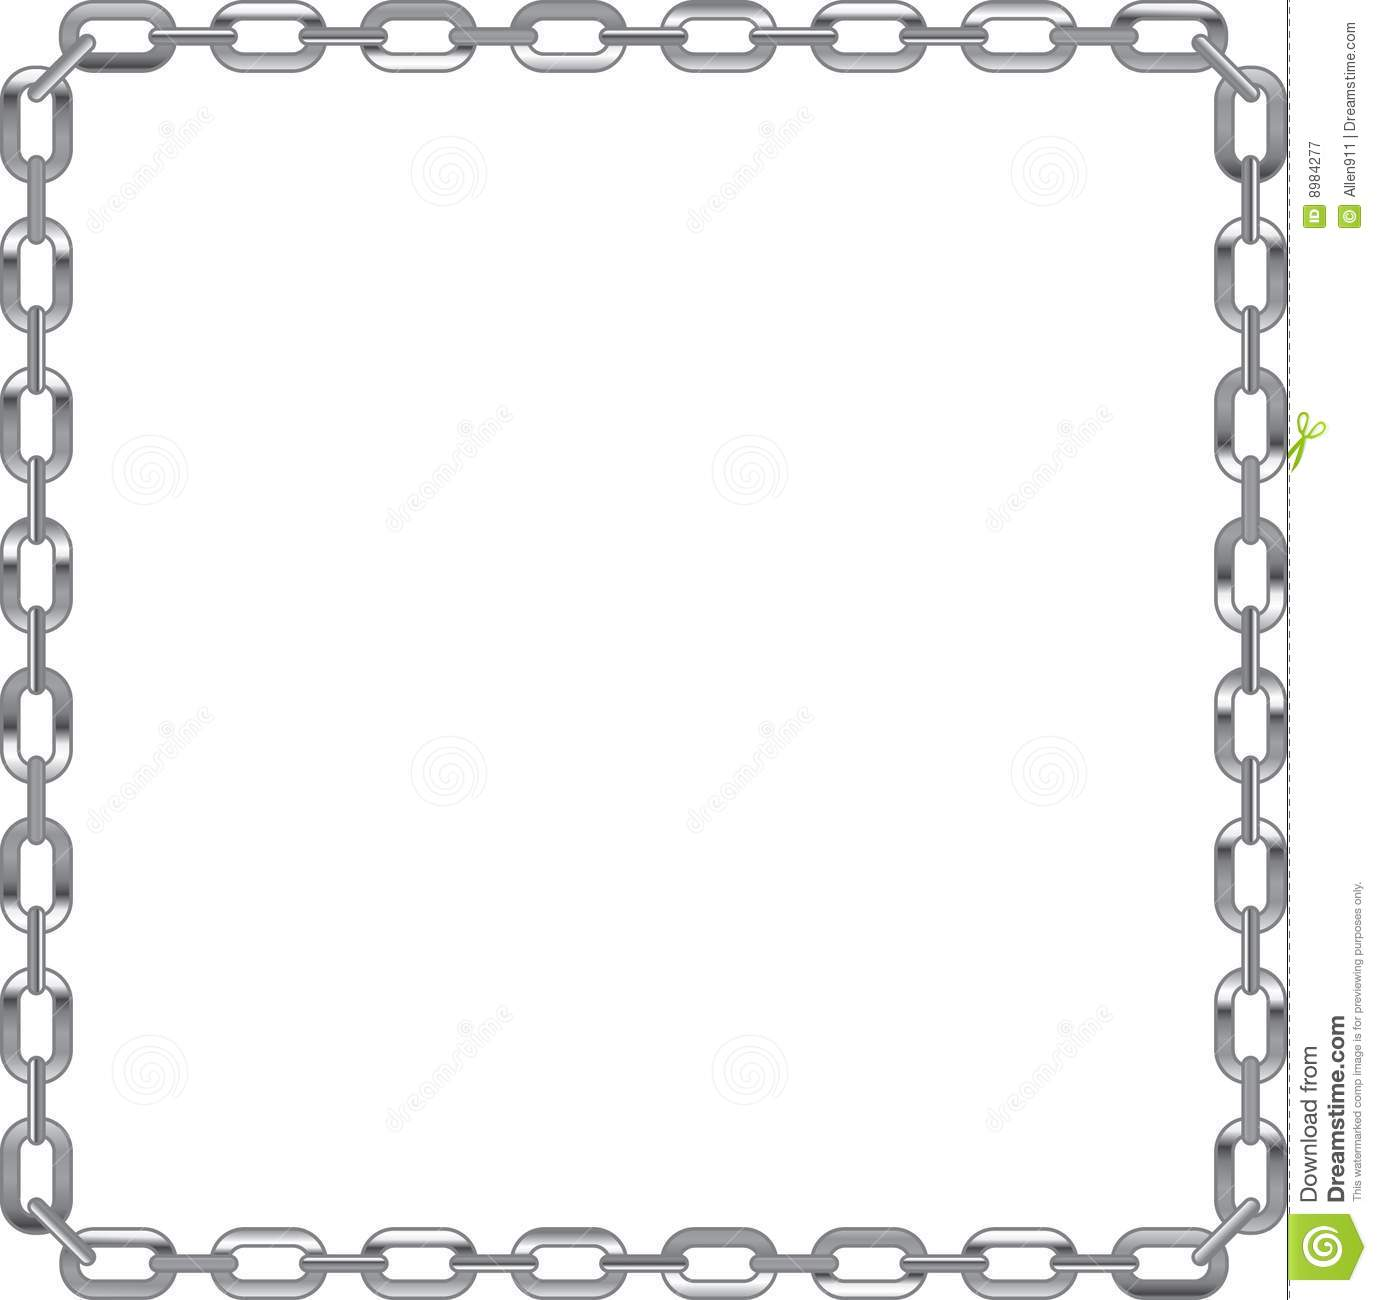 chain link frame on white background royalty free stock photography image 8984277. Black Bedroom Furniture Sets. Home Design Ideas